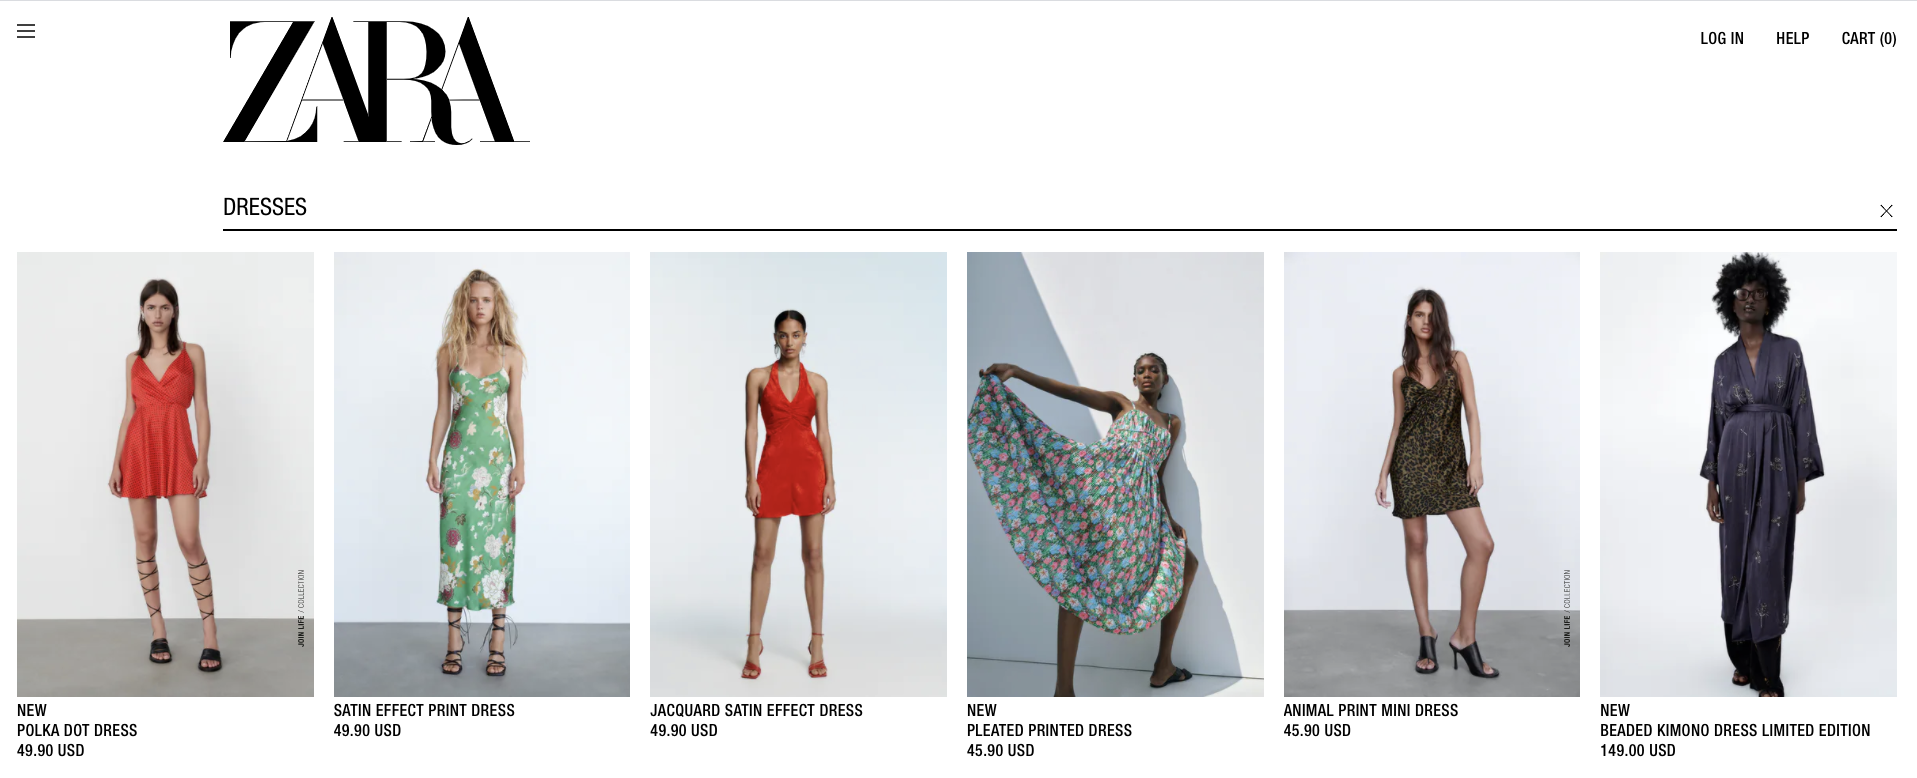 Example of smart search box placement from Zara